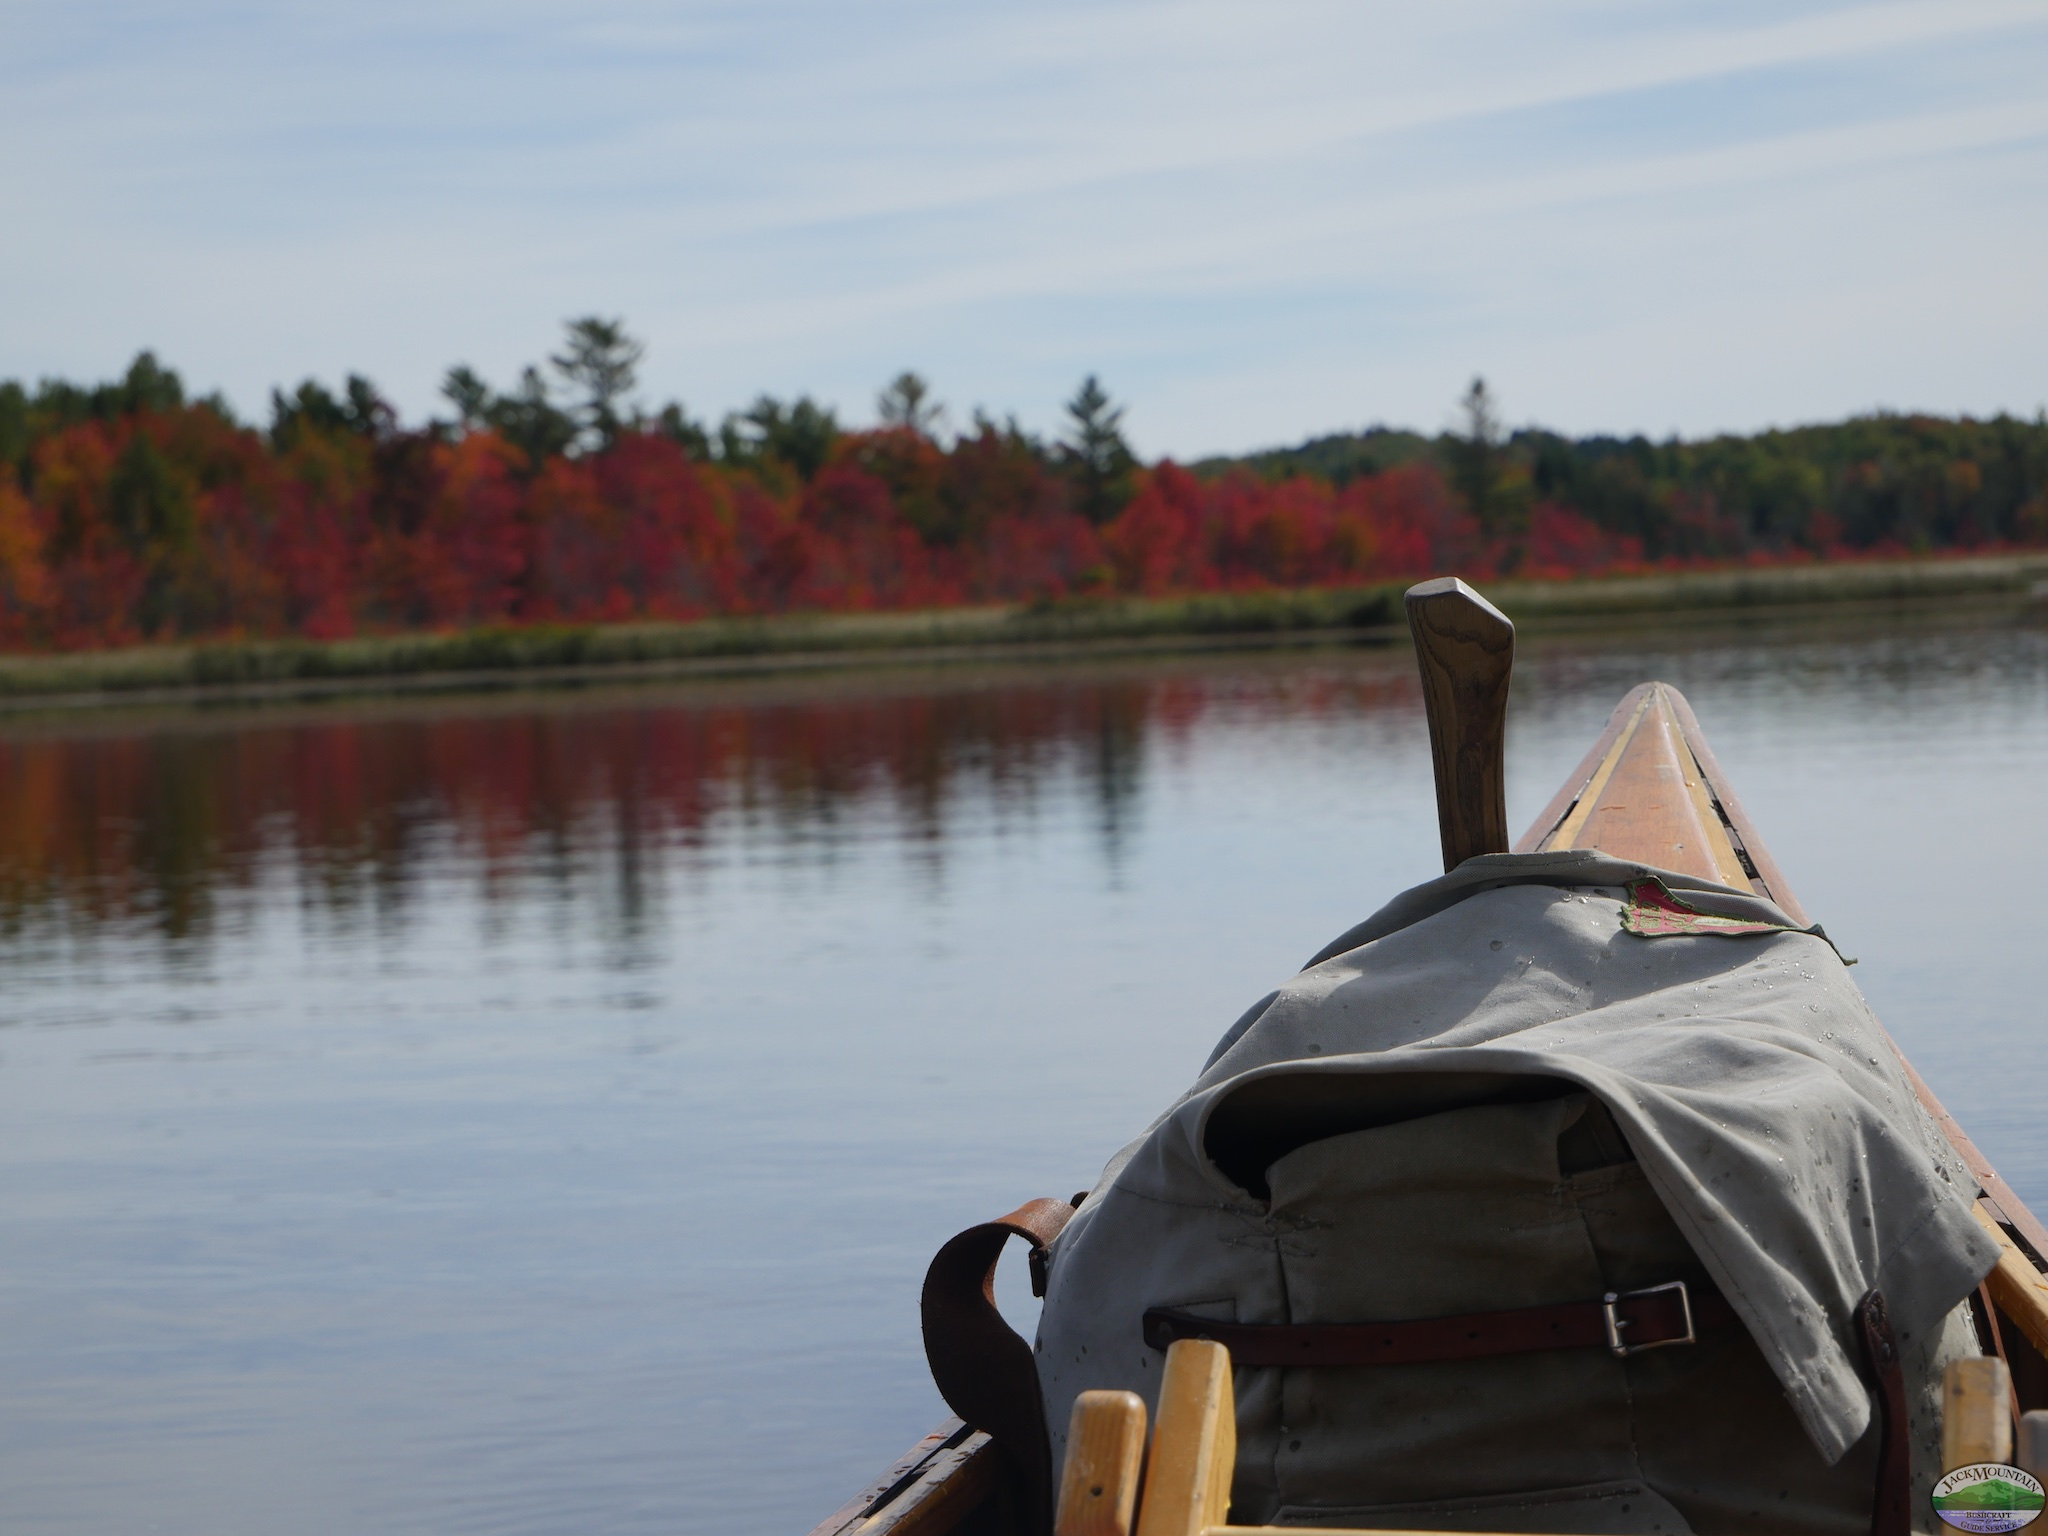 Flaming Red Maples From The Canoe